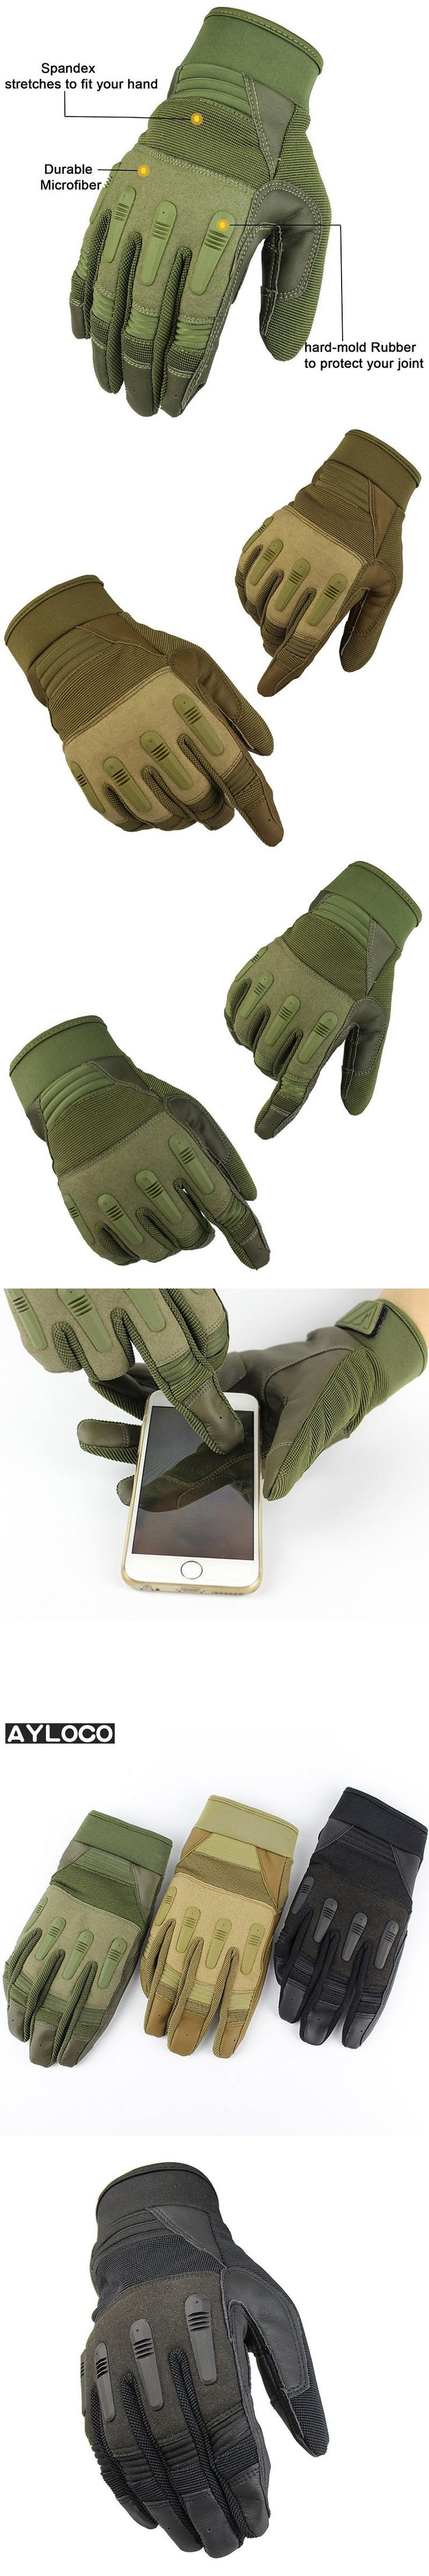 Men's Army Gloves Man Full finger gloves Military police Safety Gloves Speed dry Anti-Slippery Leather Tactical Gloves